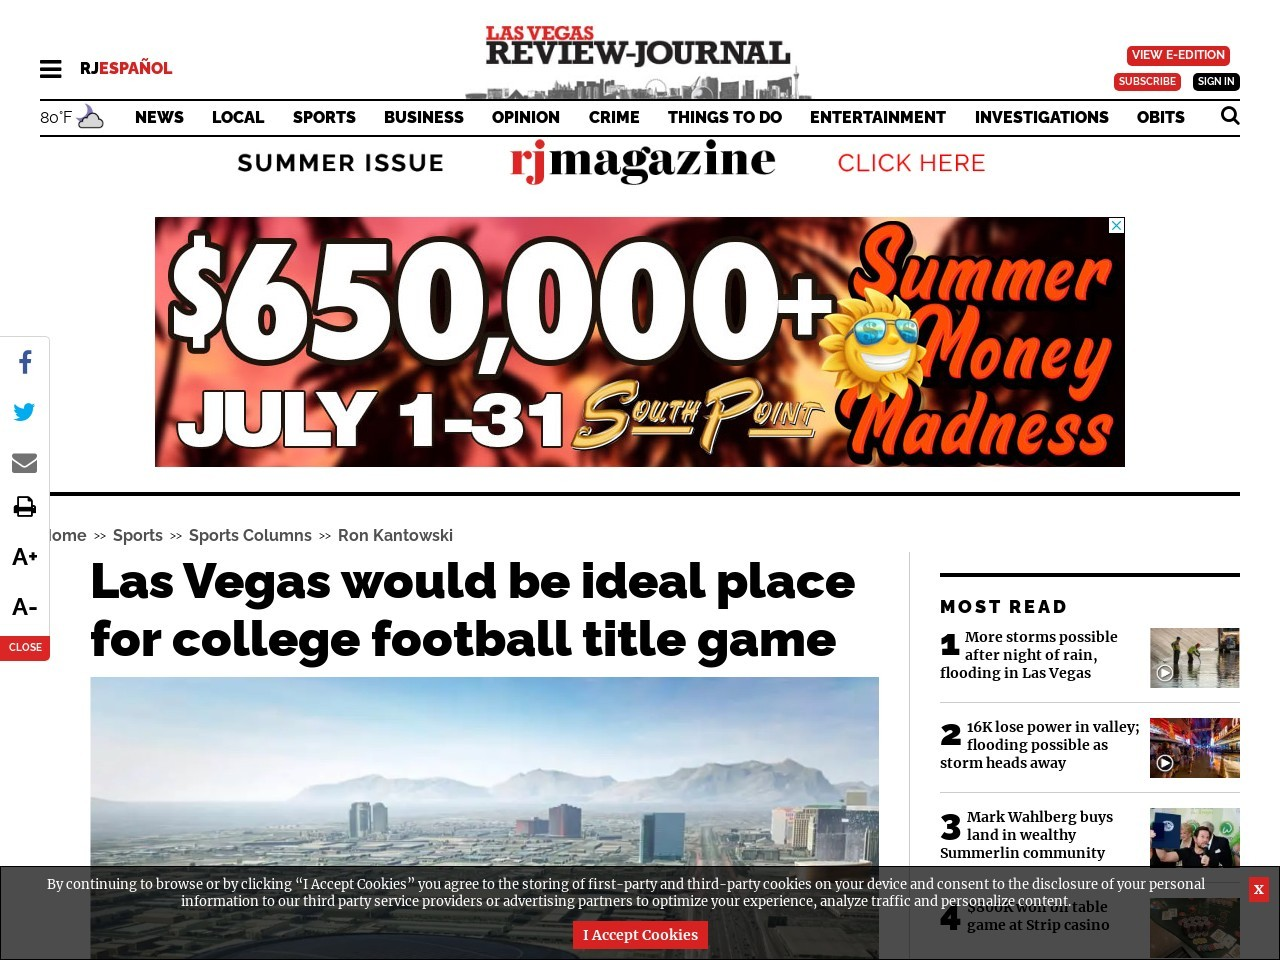 Las Vegas would be ideal place for college football title game